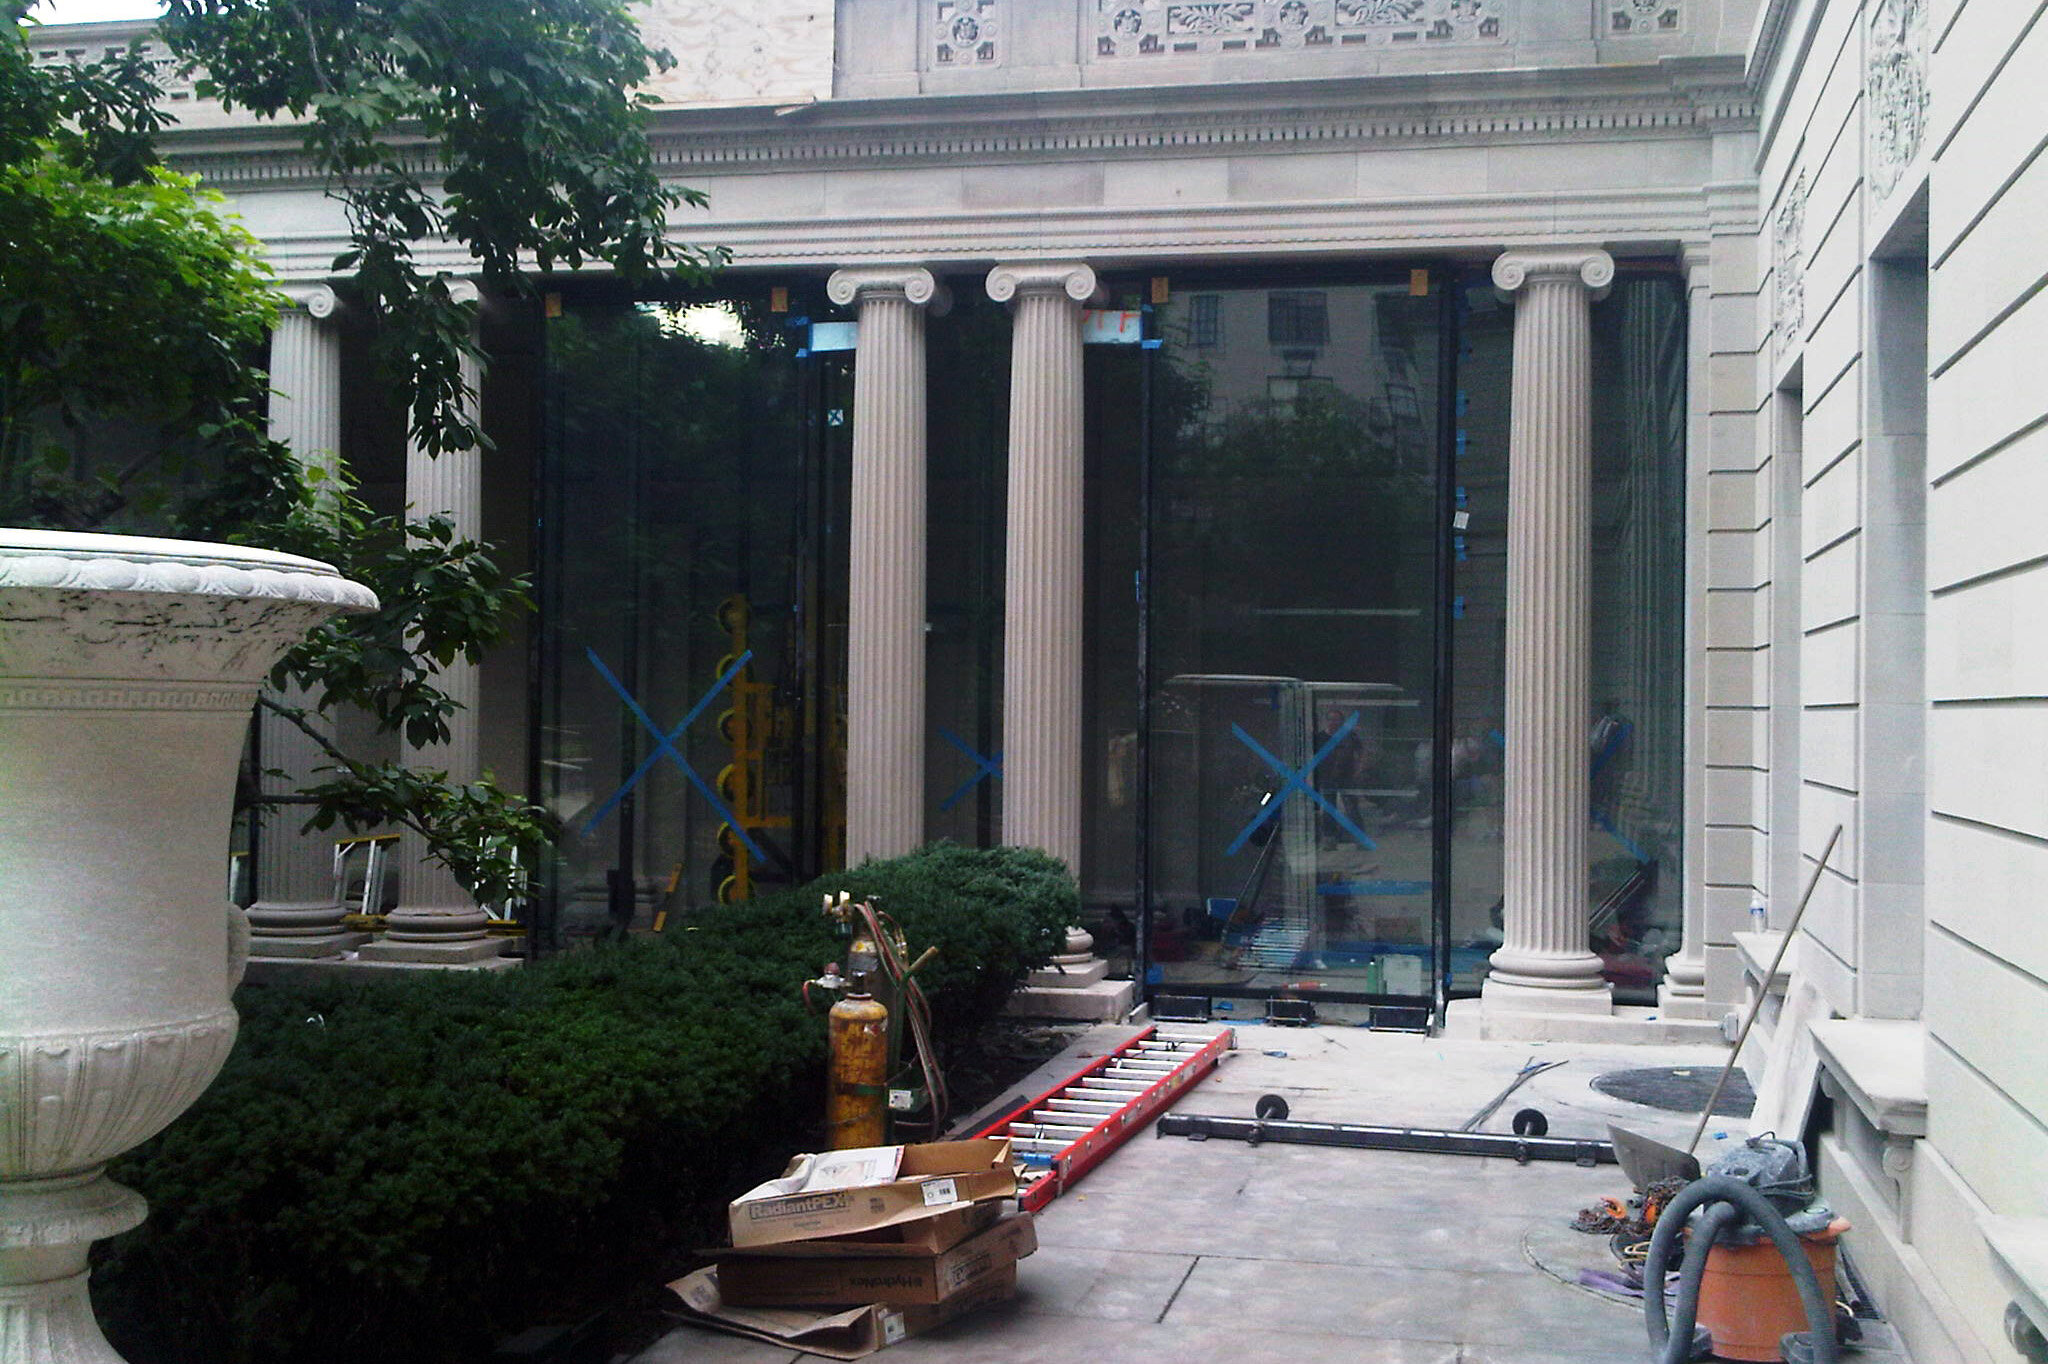 Portico during construction